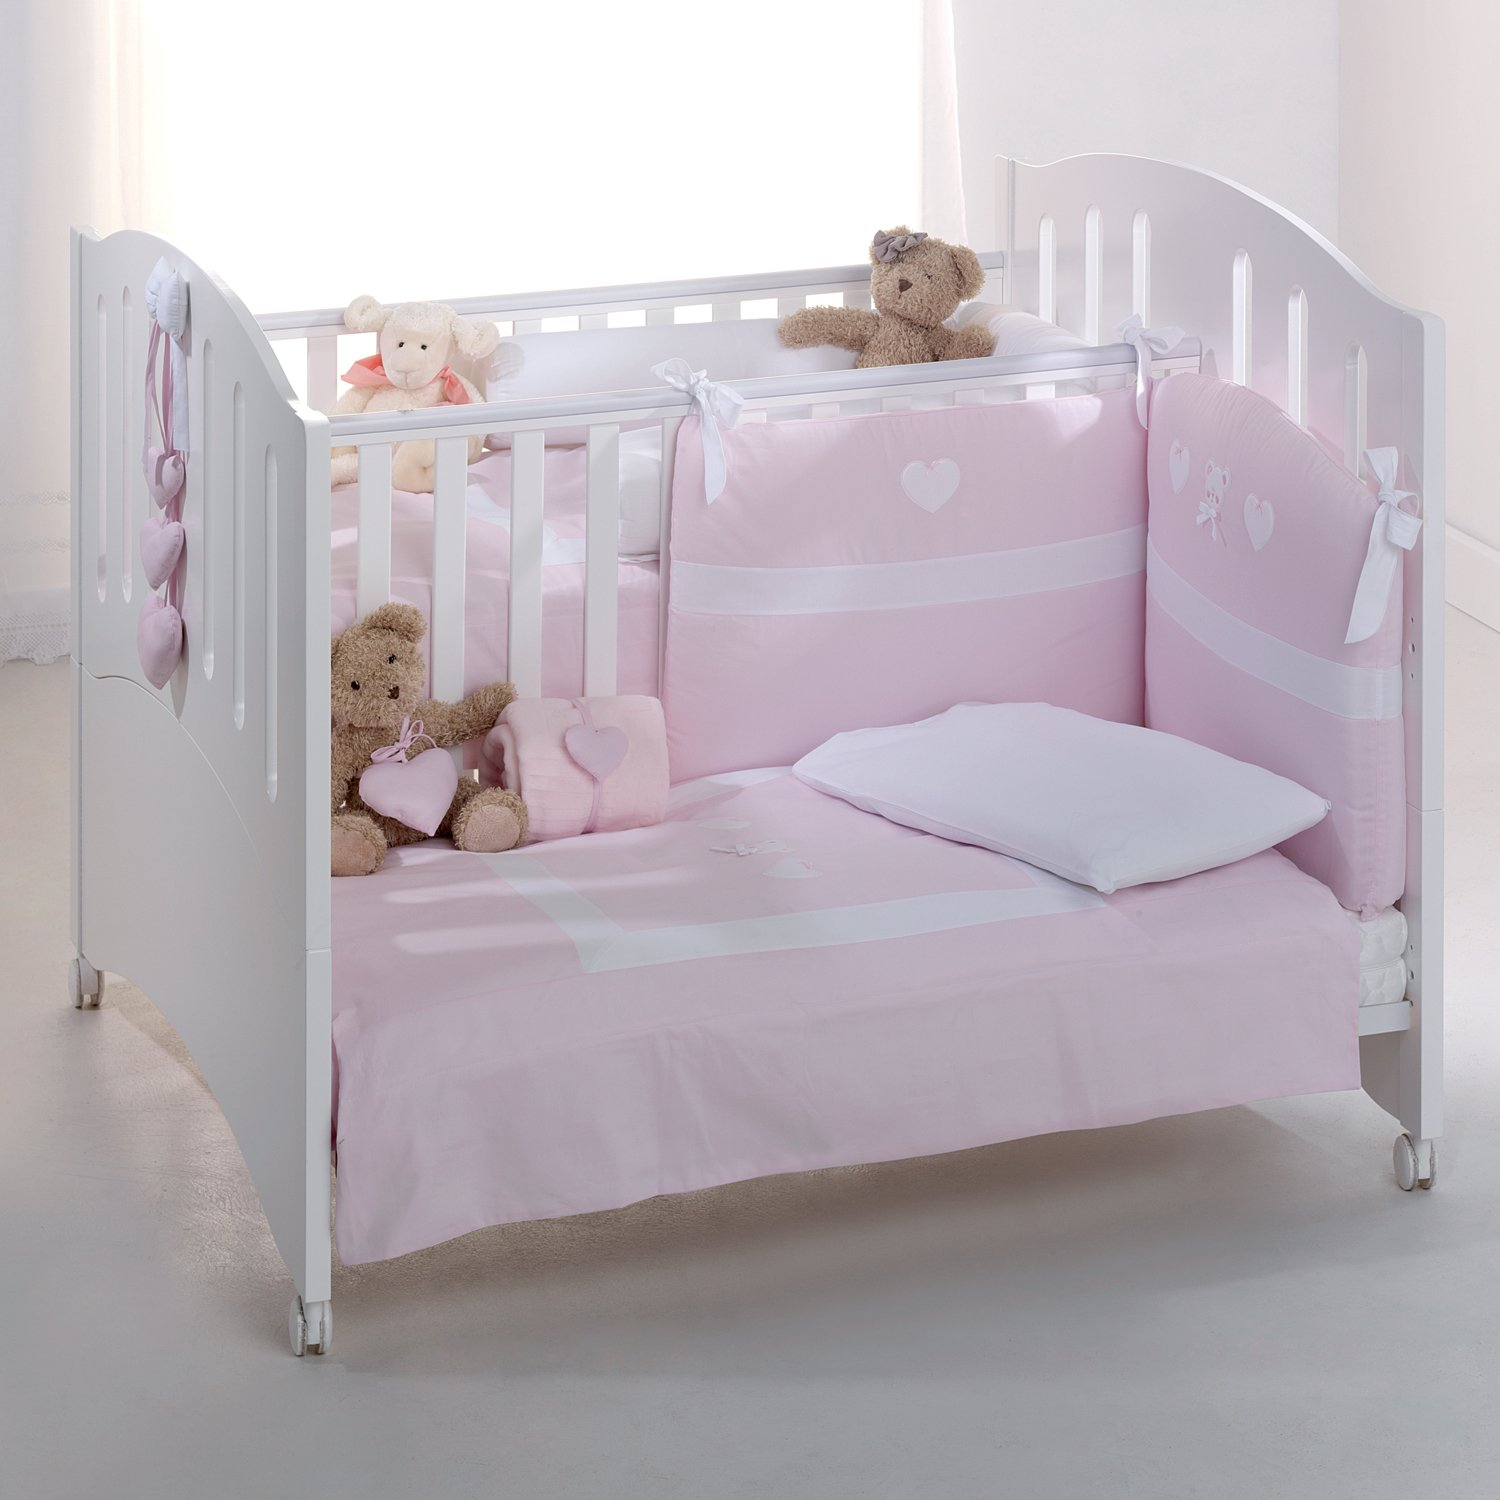 azzurra design zwillingsbett baby kinderbett zwillinge. Black Bedroom Furniture Sets. Home Design Ideas